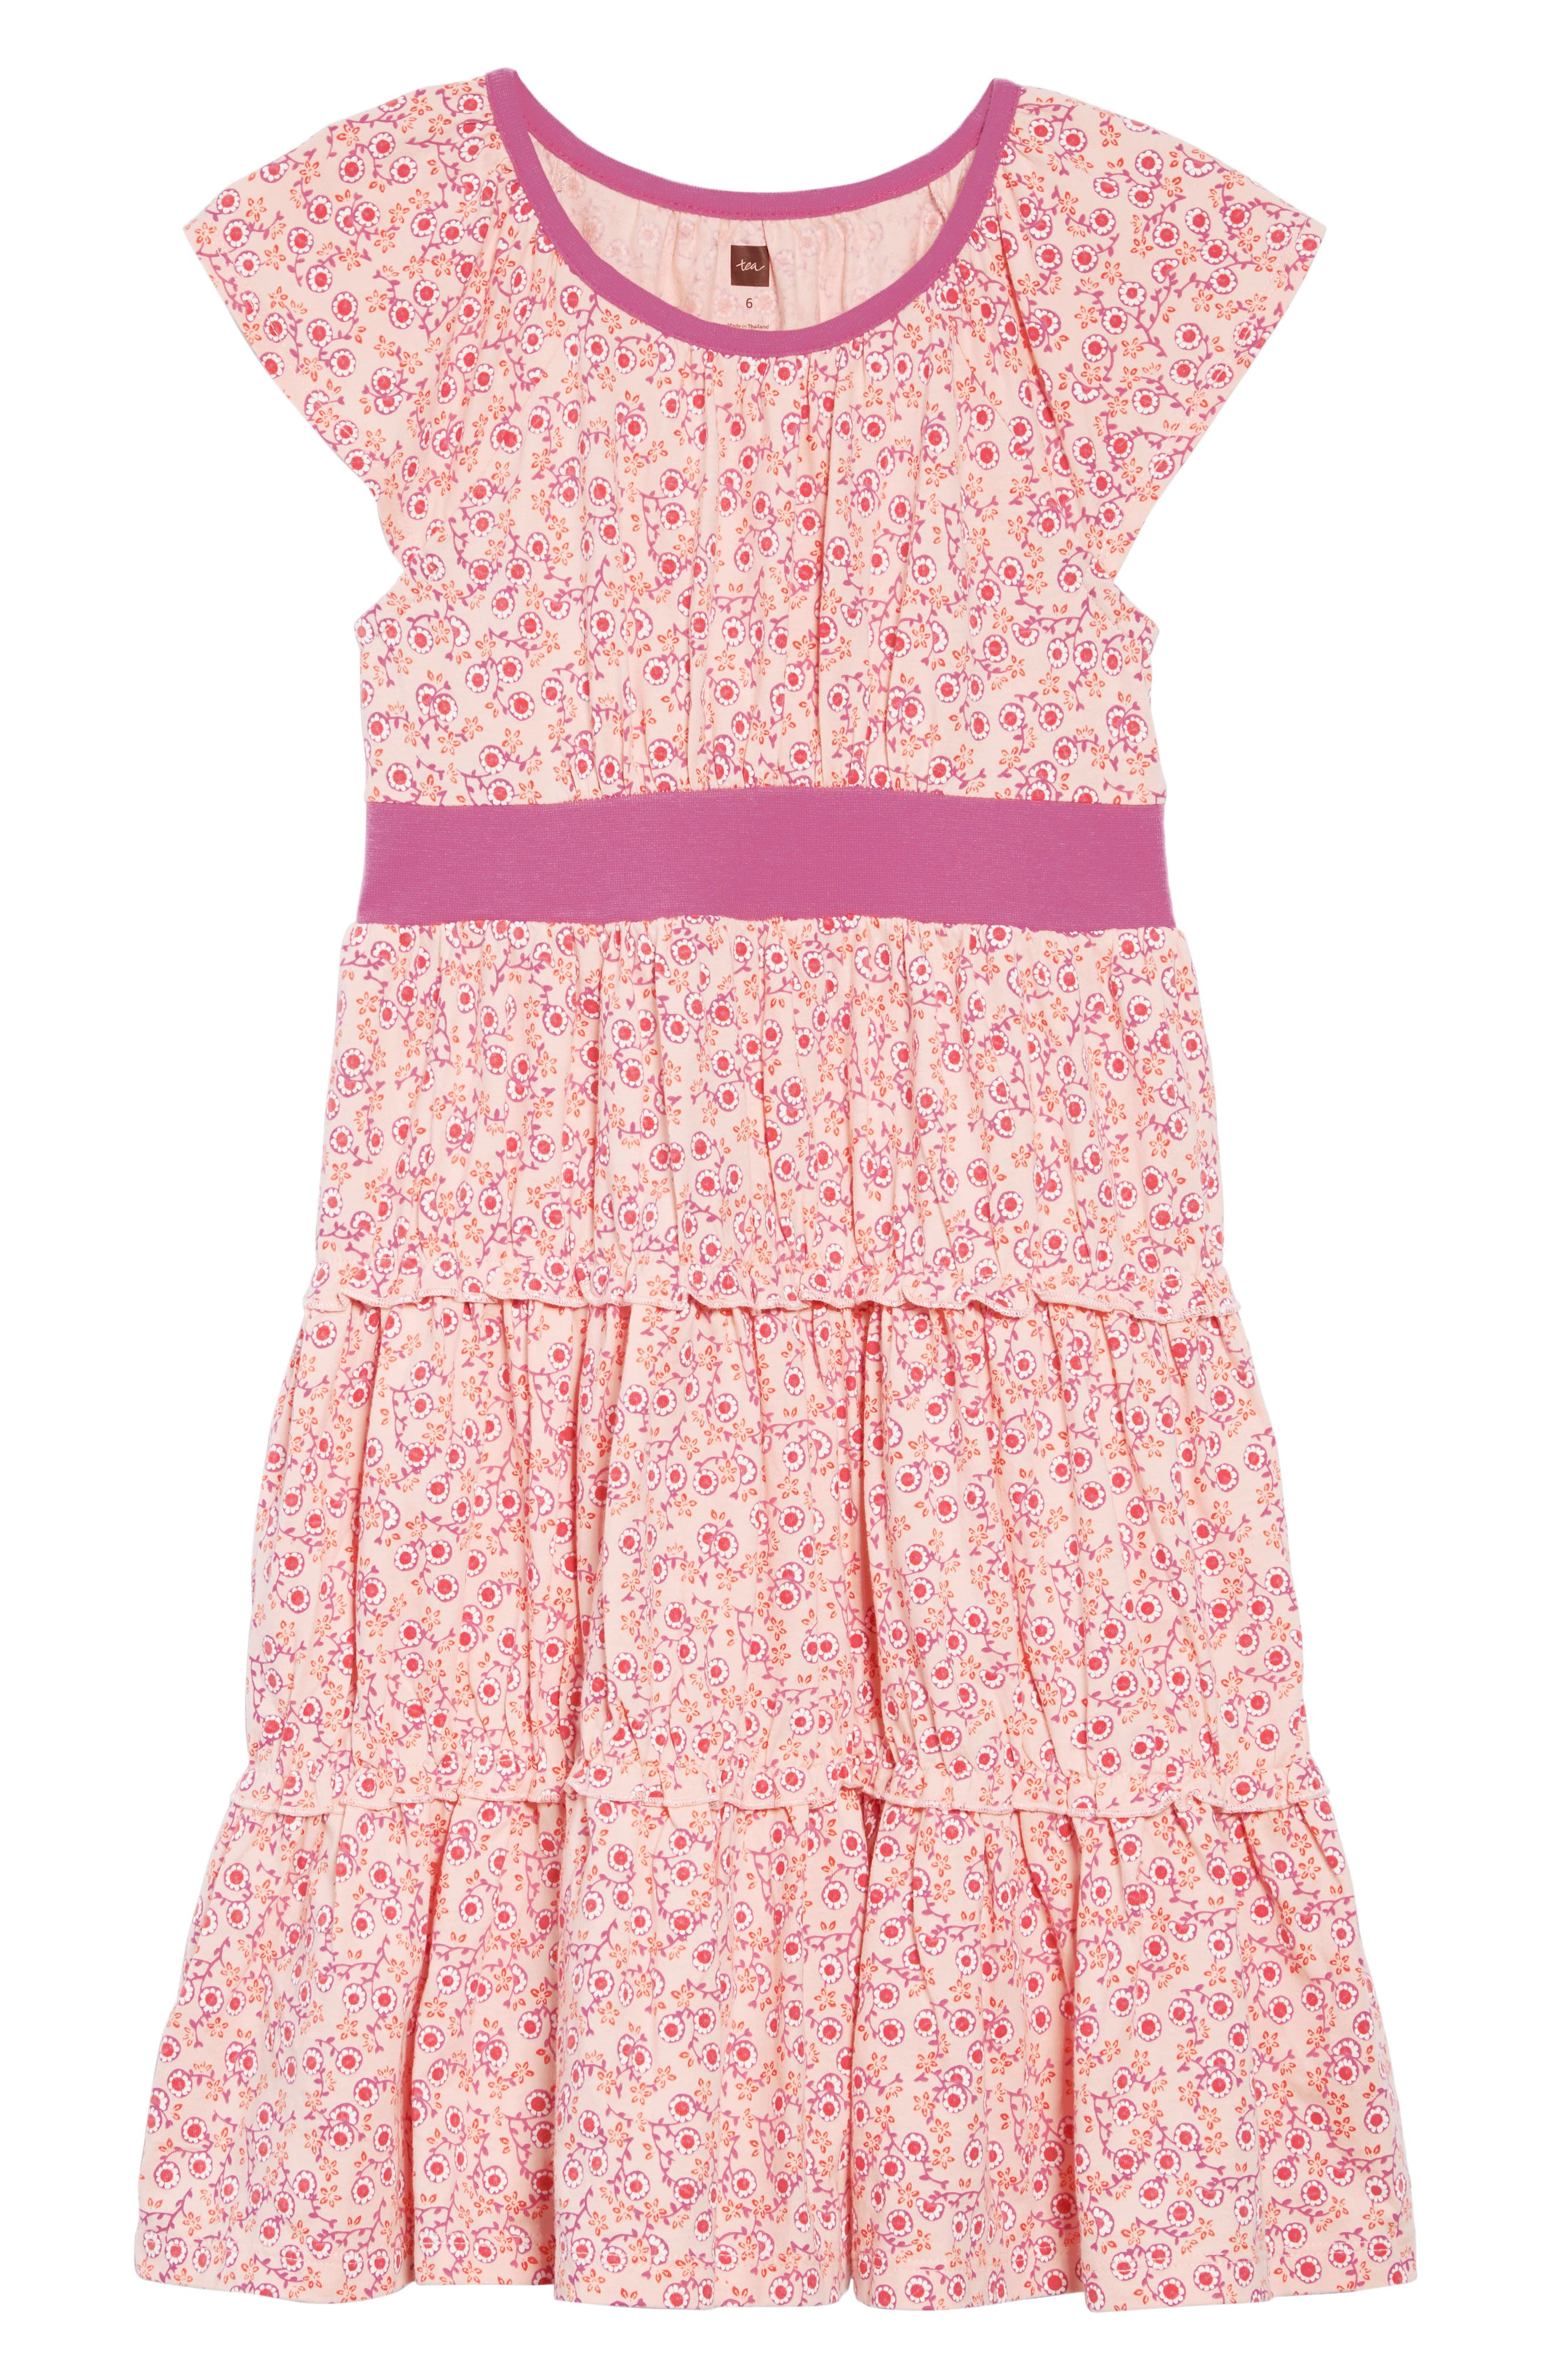 TEA COLLECTION,                             Print Tiered Twirl Dress,                             Main thumbnail 1, color,                             MEI MEI FLORAL